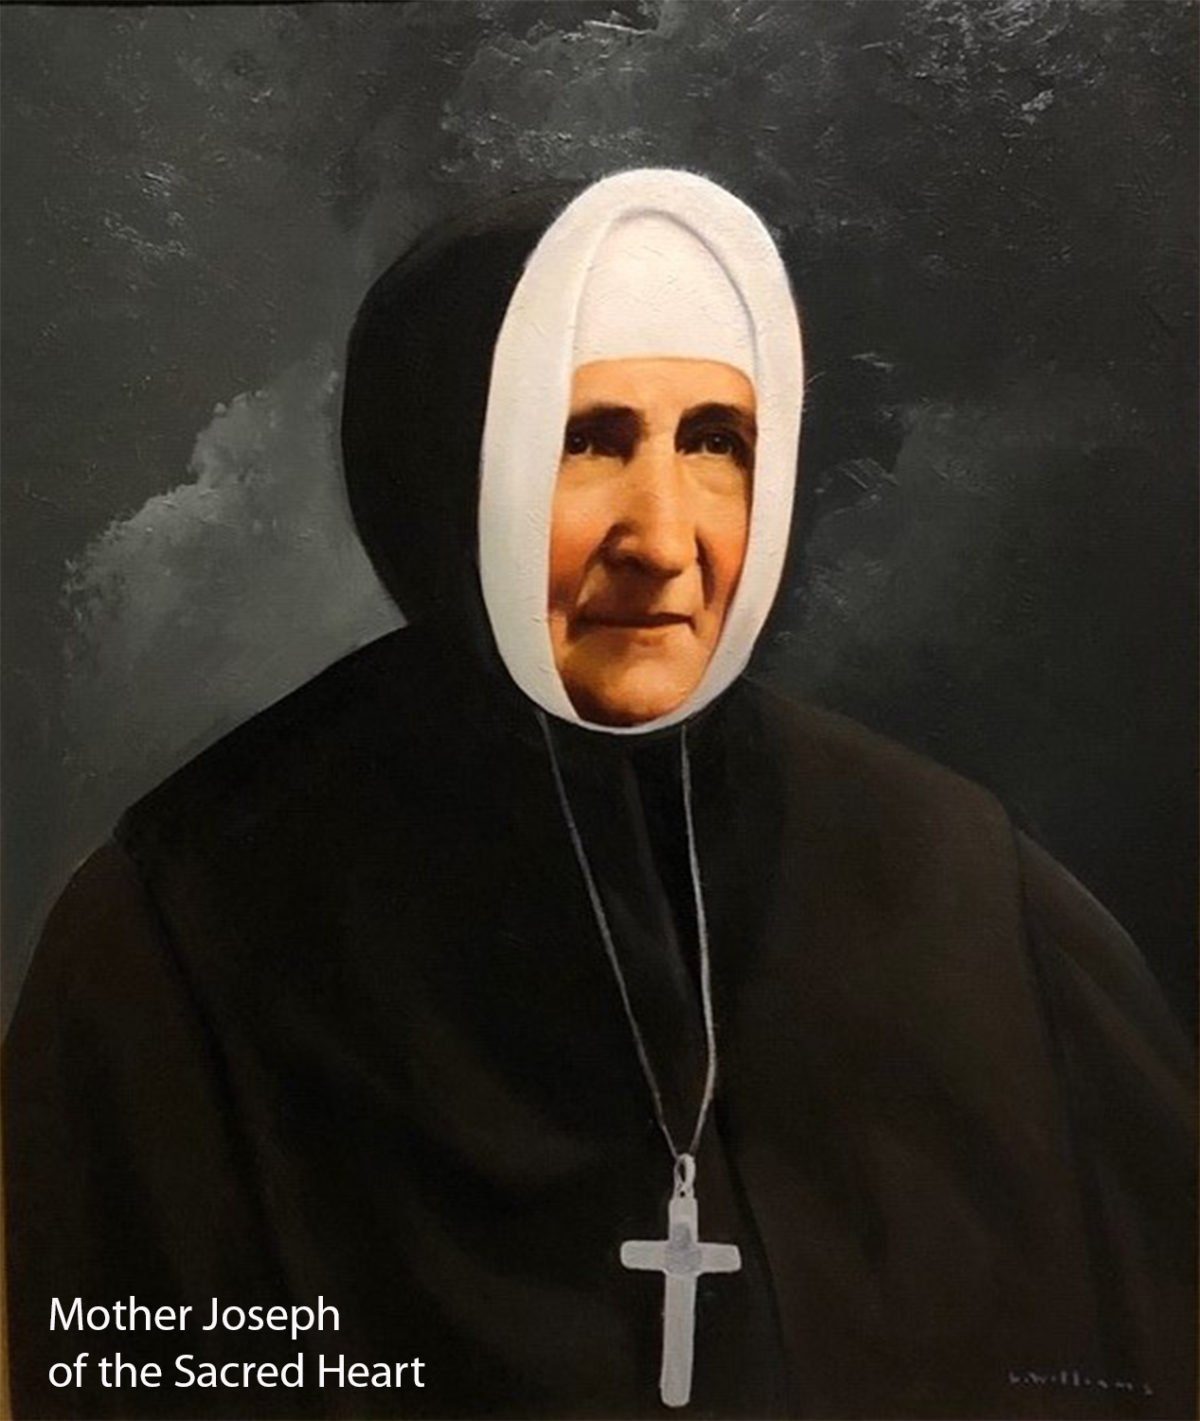 Mother Joseph of the Sacred Heart